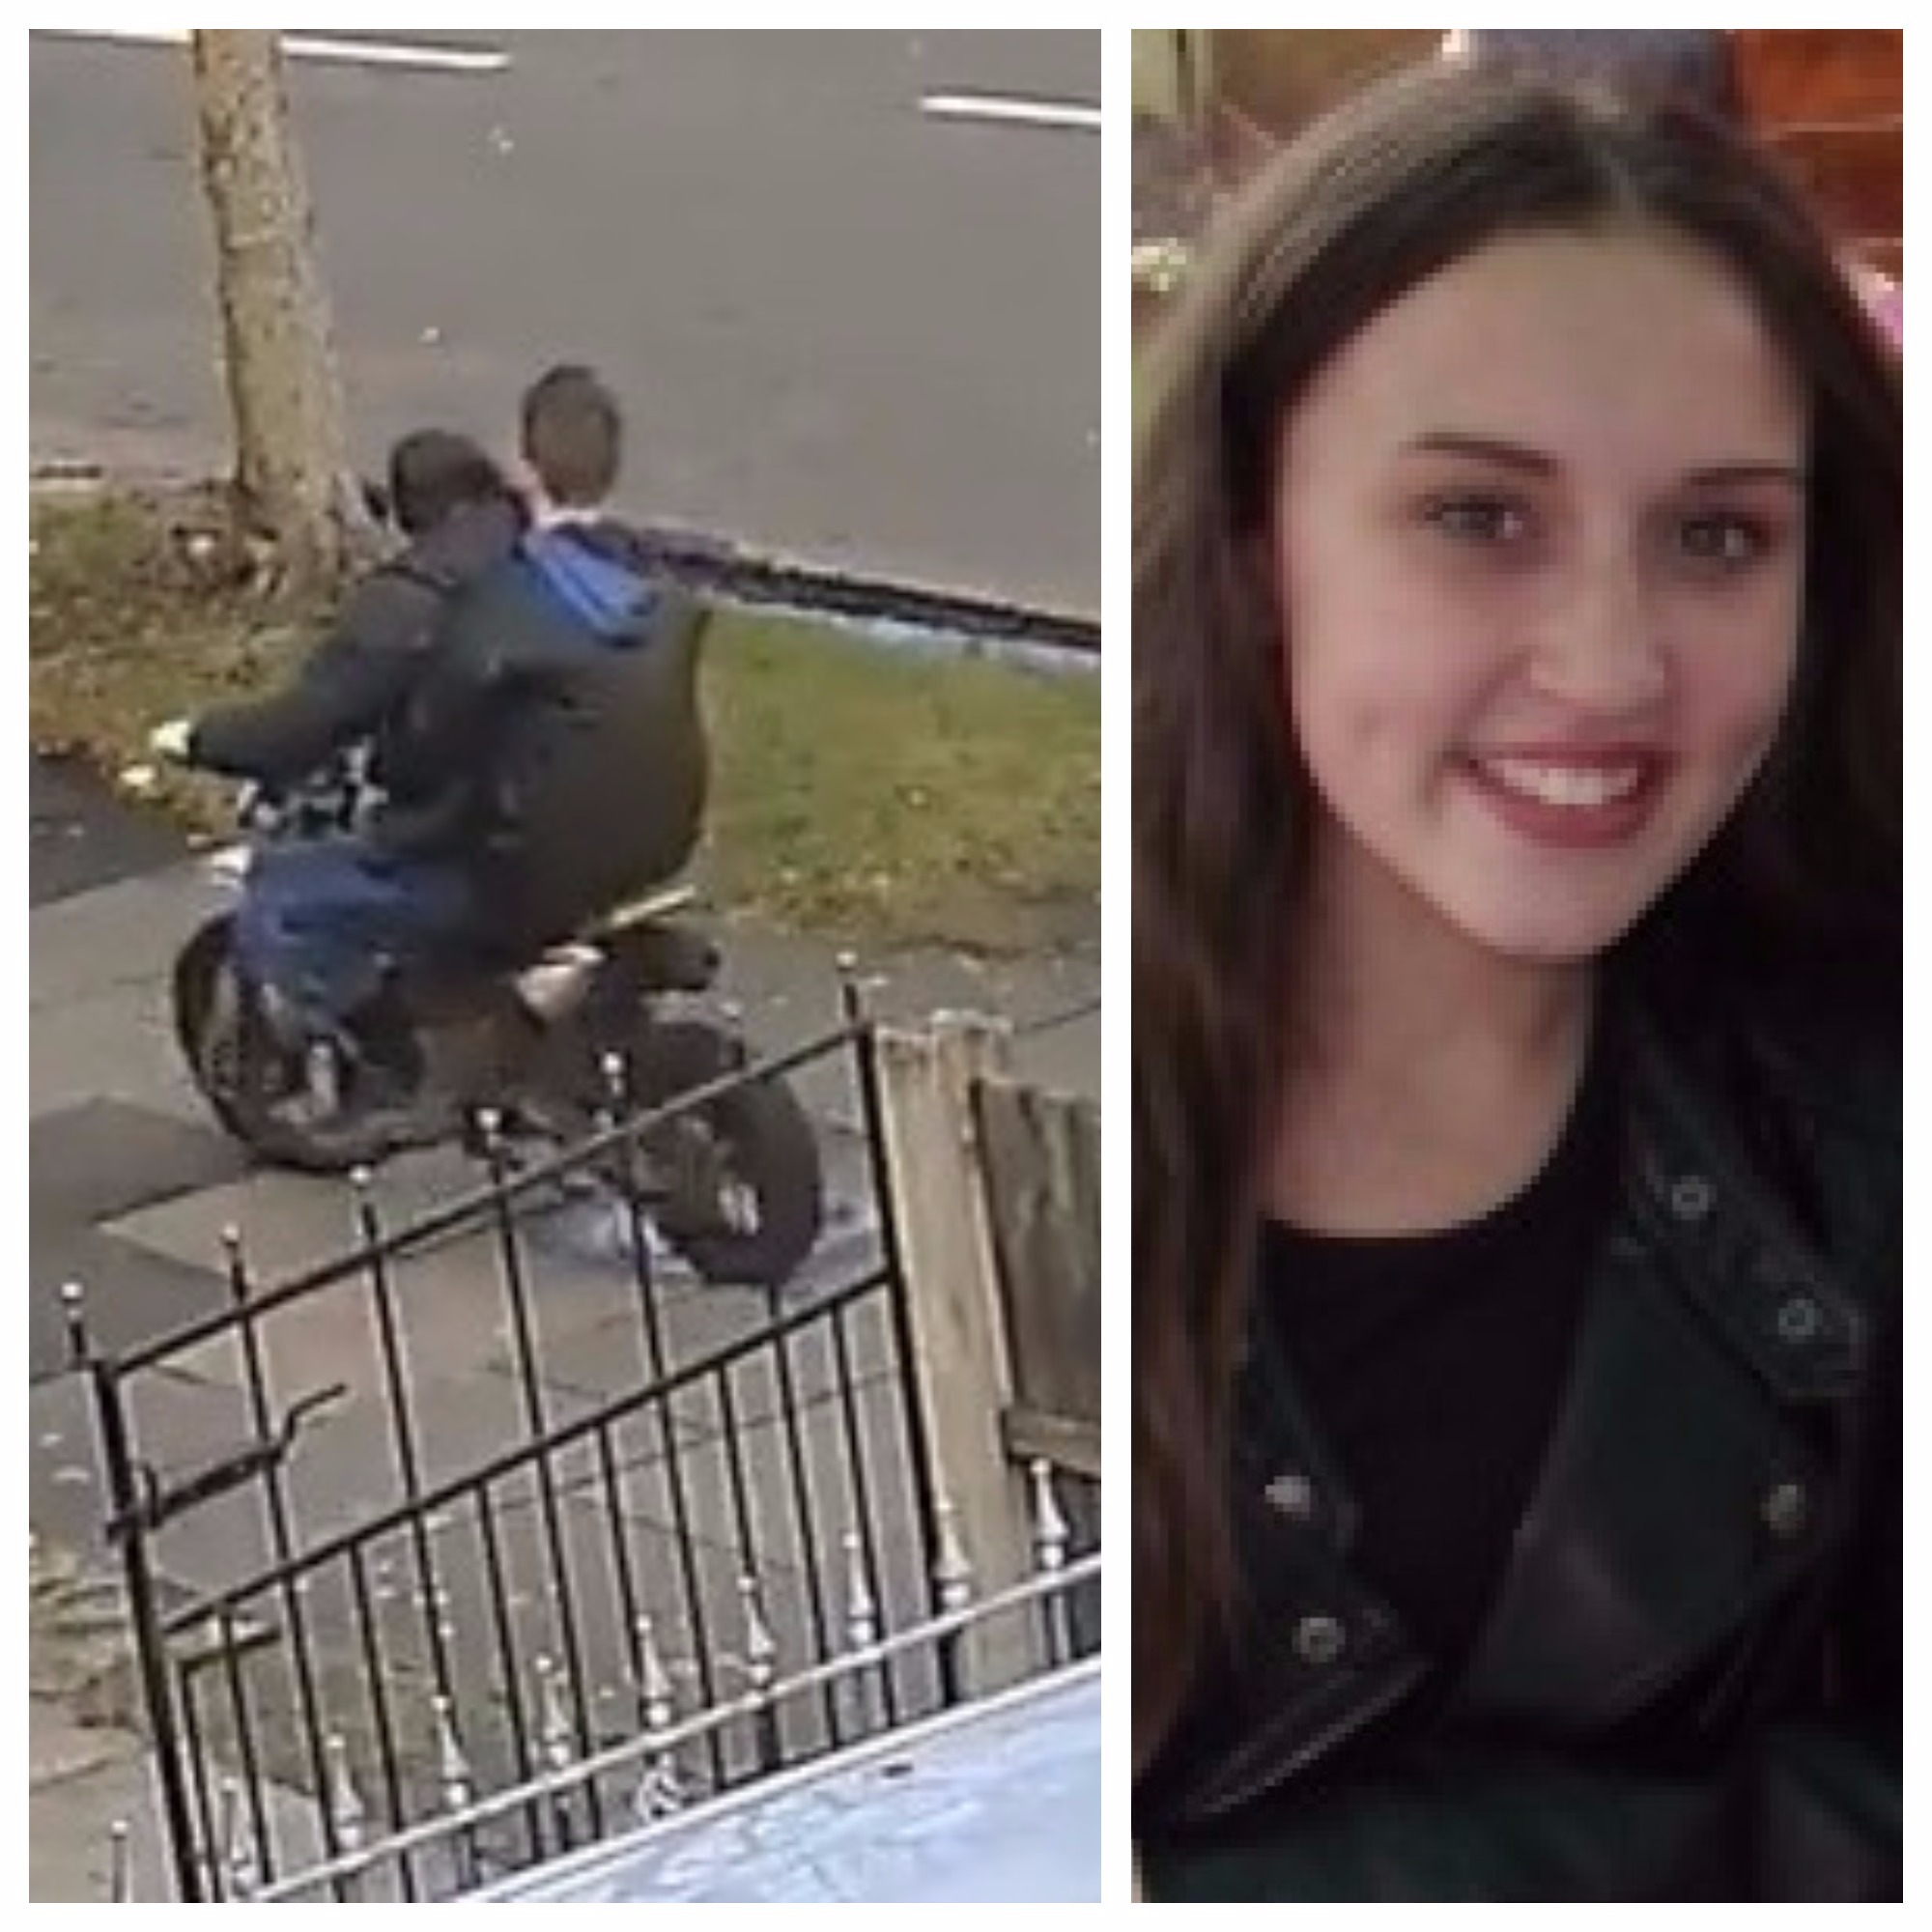 Police release CCTV footage of 15-year-old girl hit by off road bike to warn parents against buying the illegal vehicles as gifts